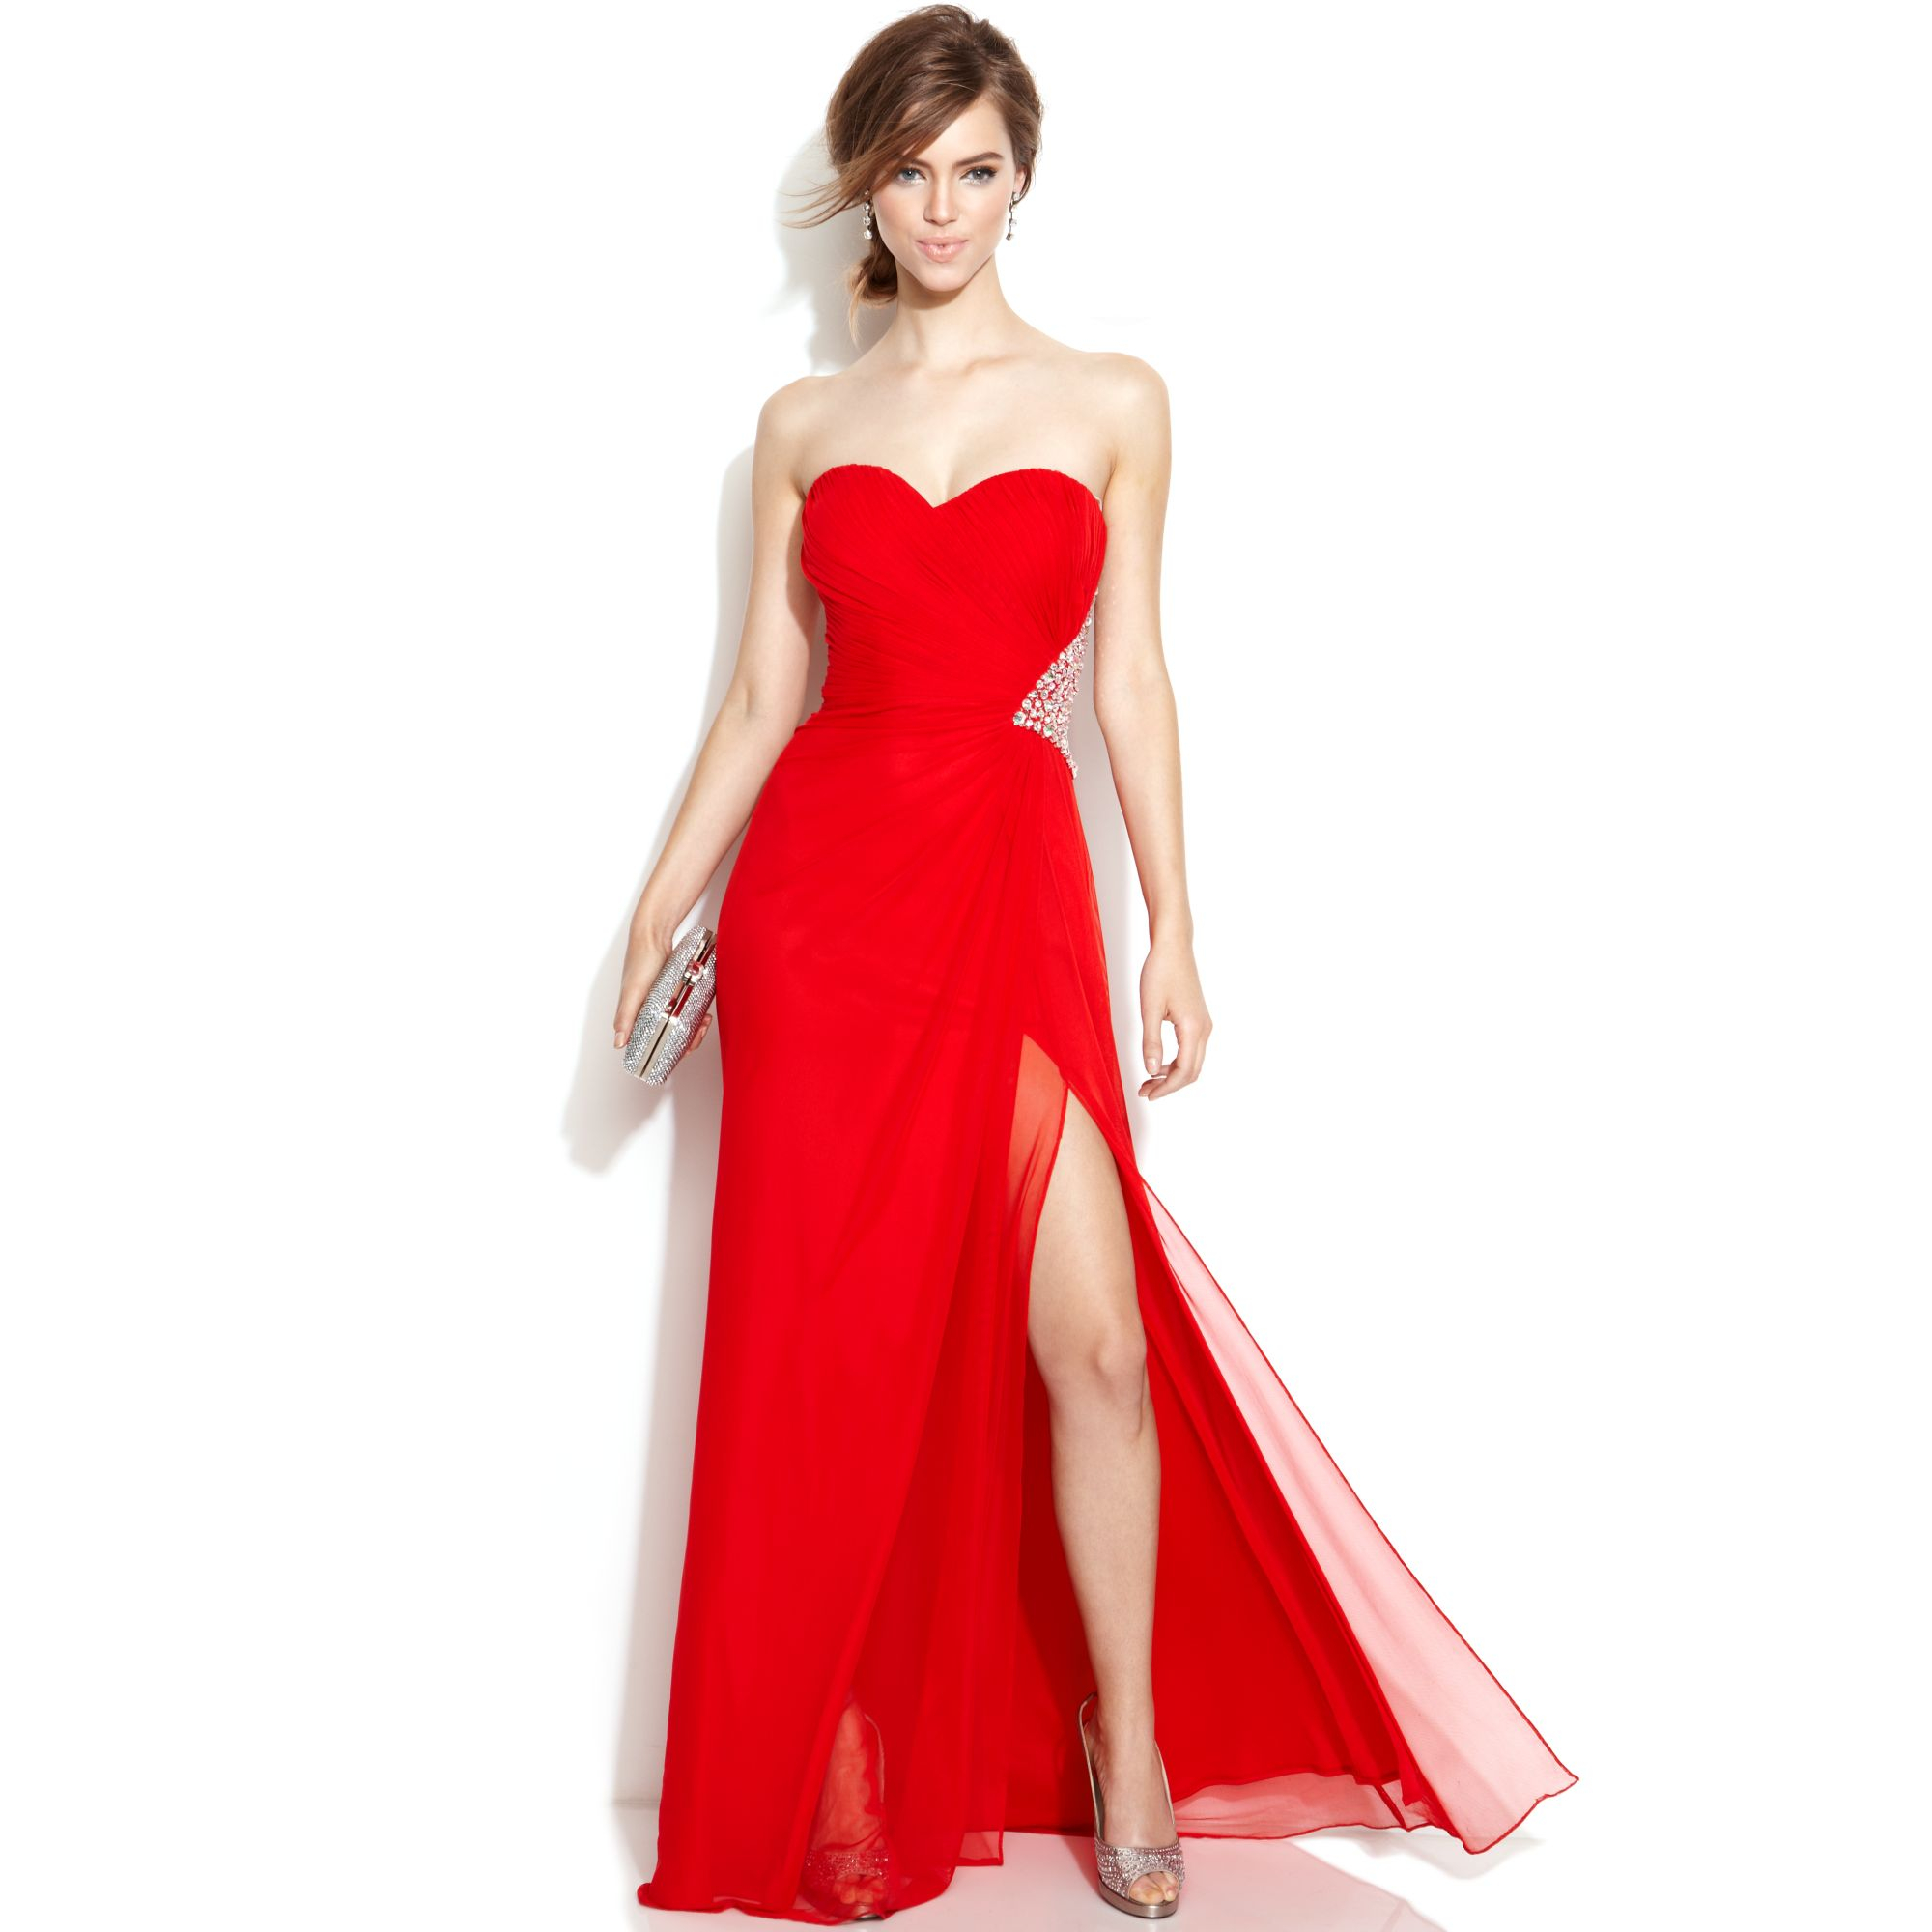 Homecoming Dresses Sale Macy'S - Holiday Dresses